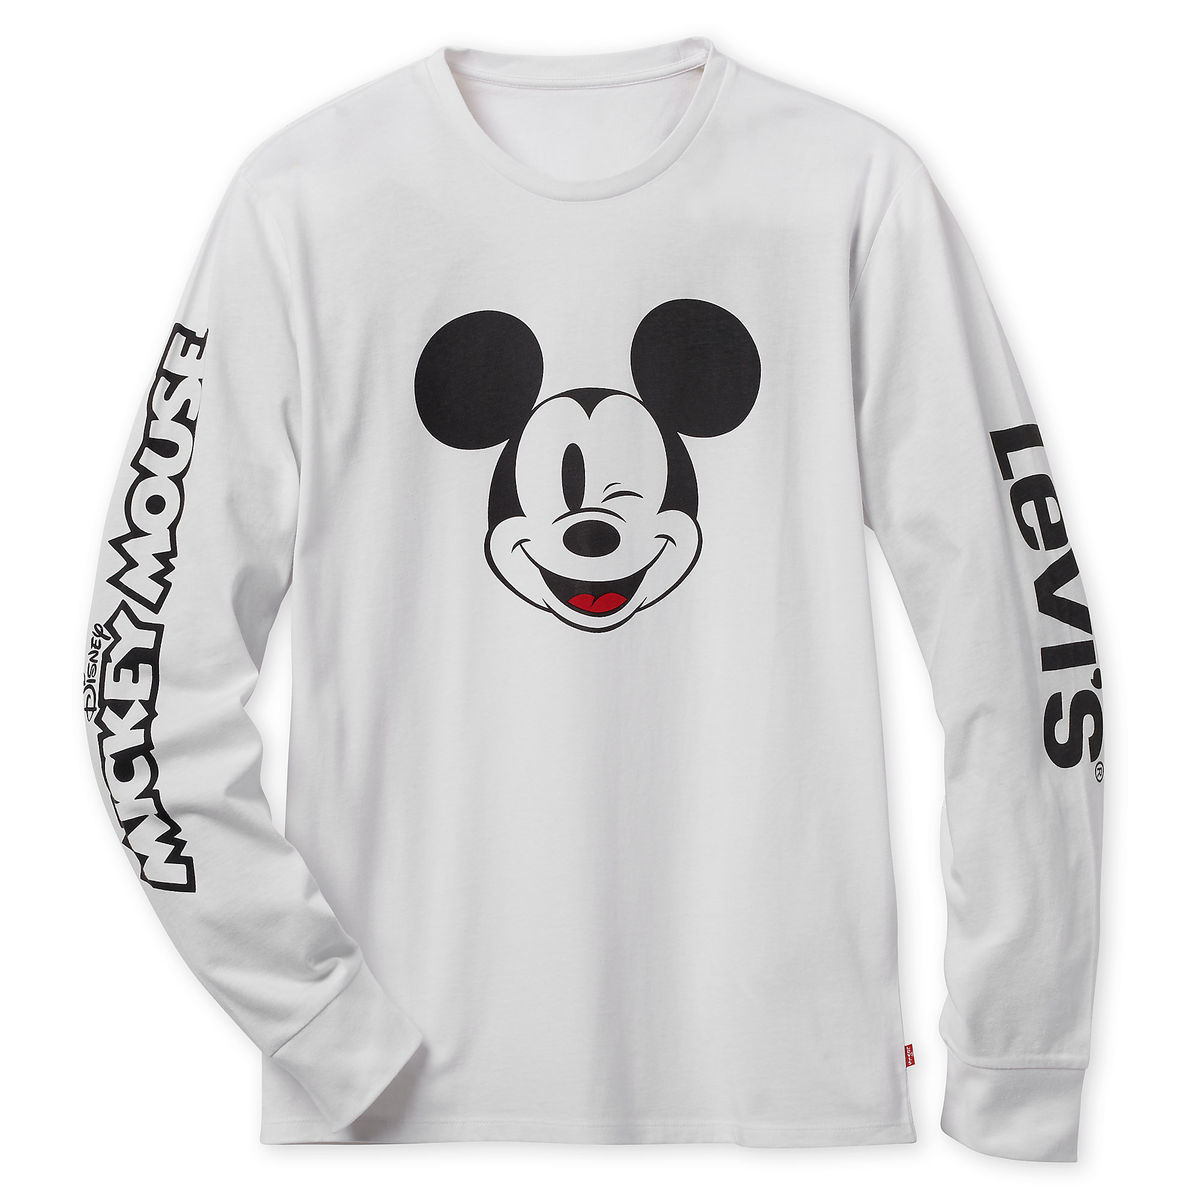 a3006213d19 Product Image of Mickey Mouse Long Sleeve T-Shirt for Men by Levi s   1